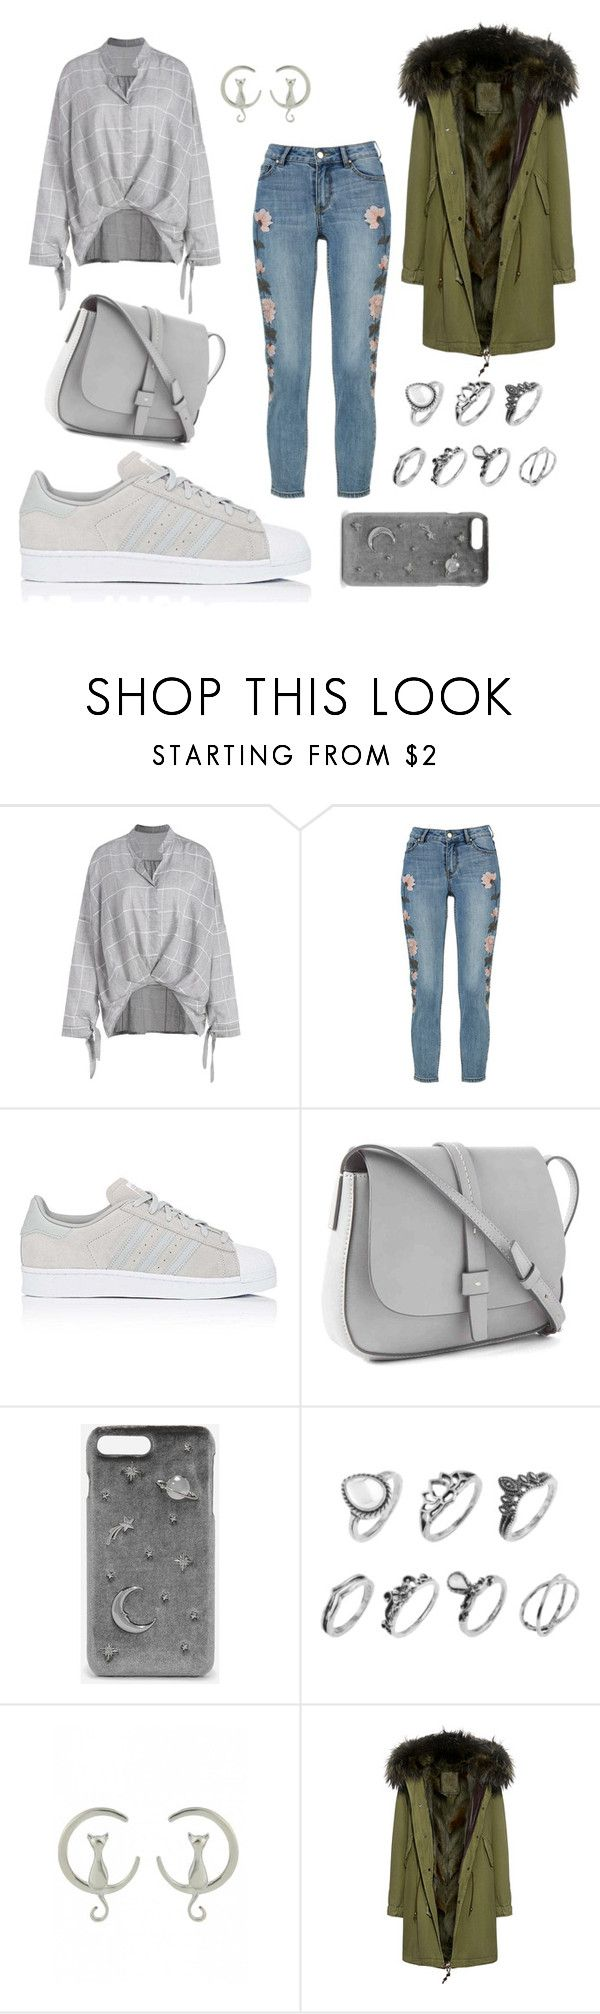 """Untitled #340"" by inesgenebra on Polyvore featuring beauty, adidas, Gap, CHARLES & KEITH and Mr & Mrs Italy"